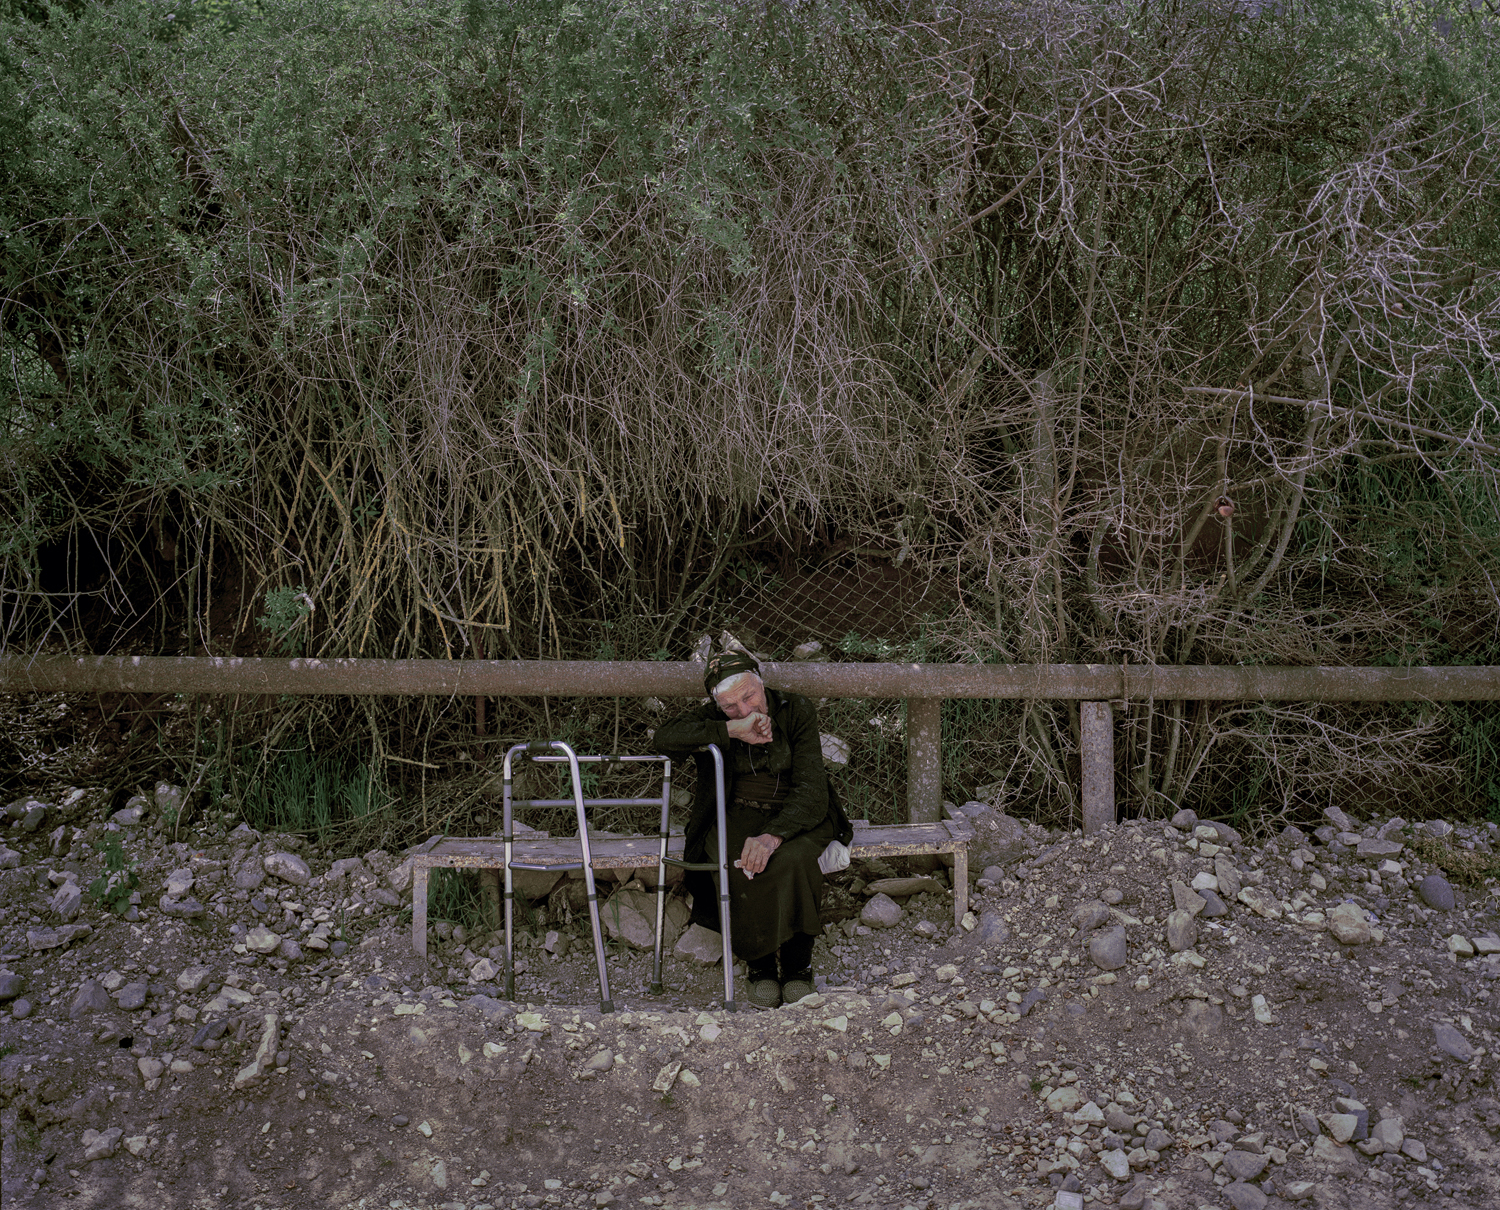 Vardadzor. Grieving widow crying on the bench in front of her/his house.